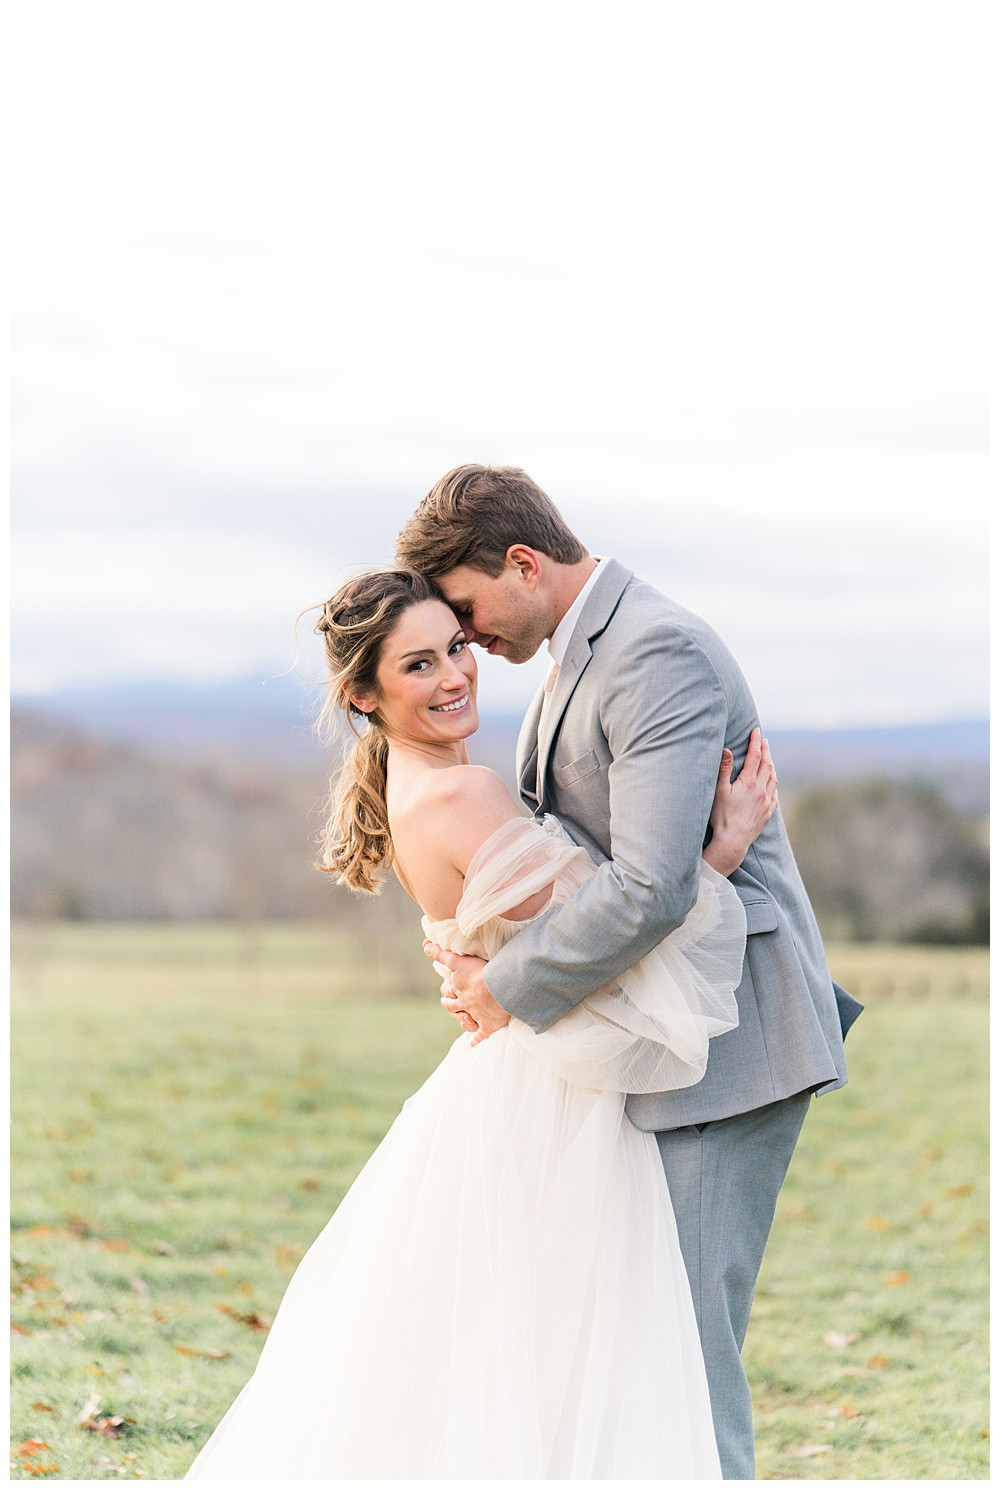 Zero waste wedding styled shoot, mount ida, Charlottesville Virginia Wedding, environmentally friendly wedding, blue ridge mountains, Austin & Austin Photography